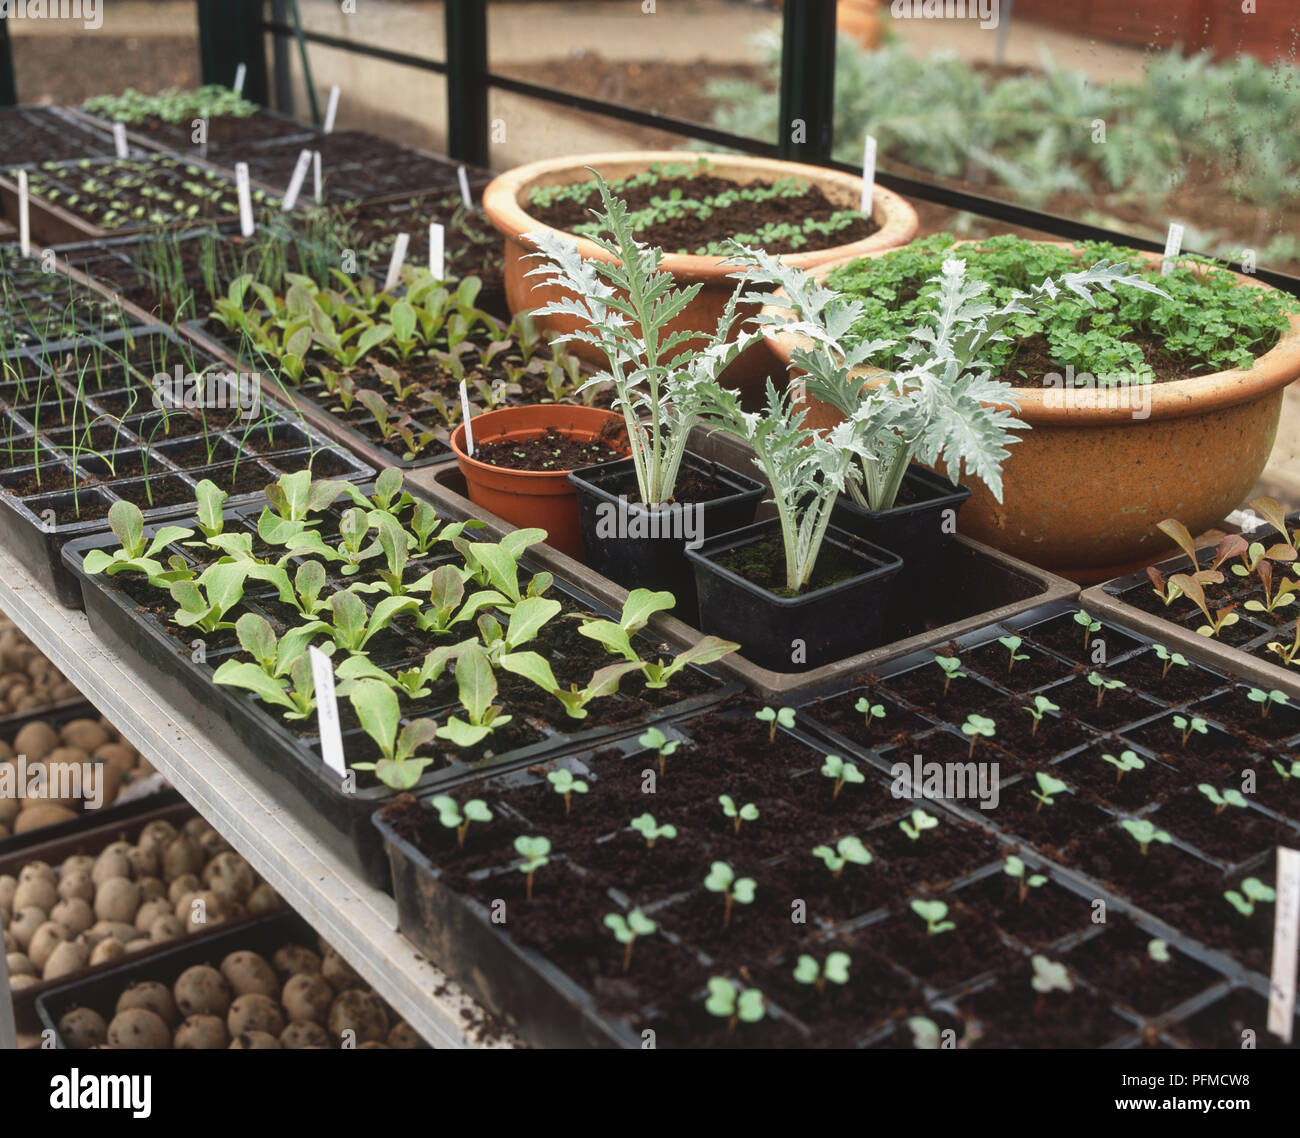 Various Seedlings Growing In Plastic Trays Pots And Modules Inside Greenhouse Elevated View Stock Photo Alamy